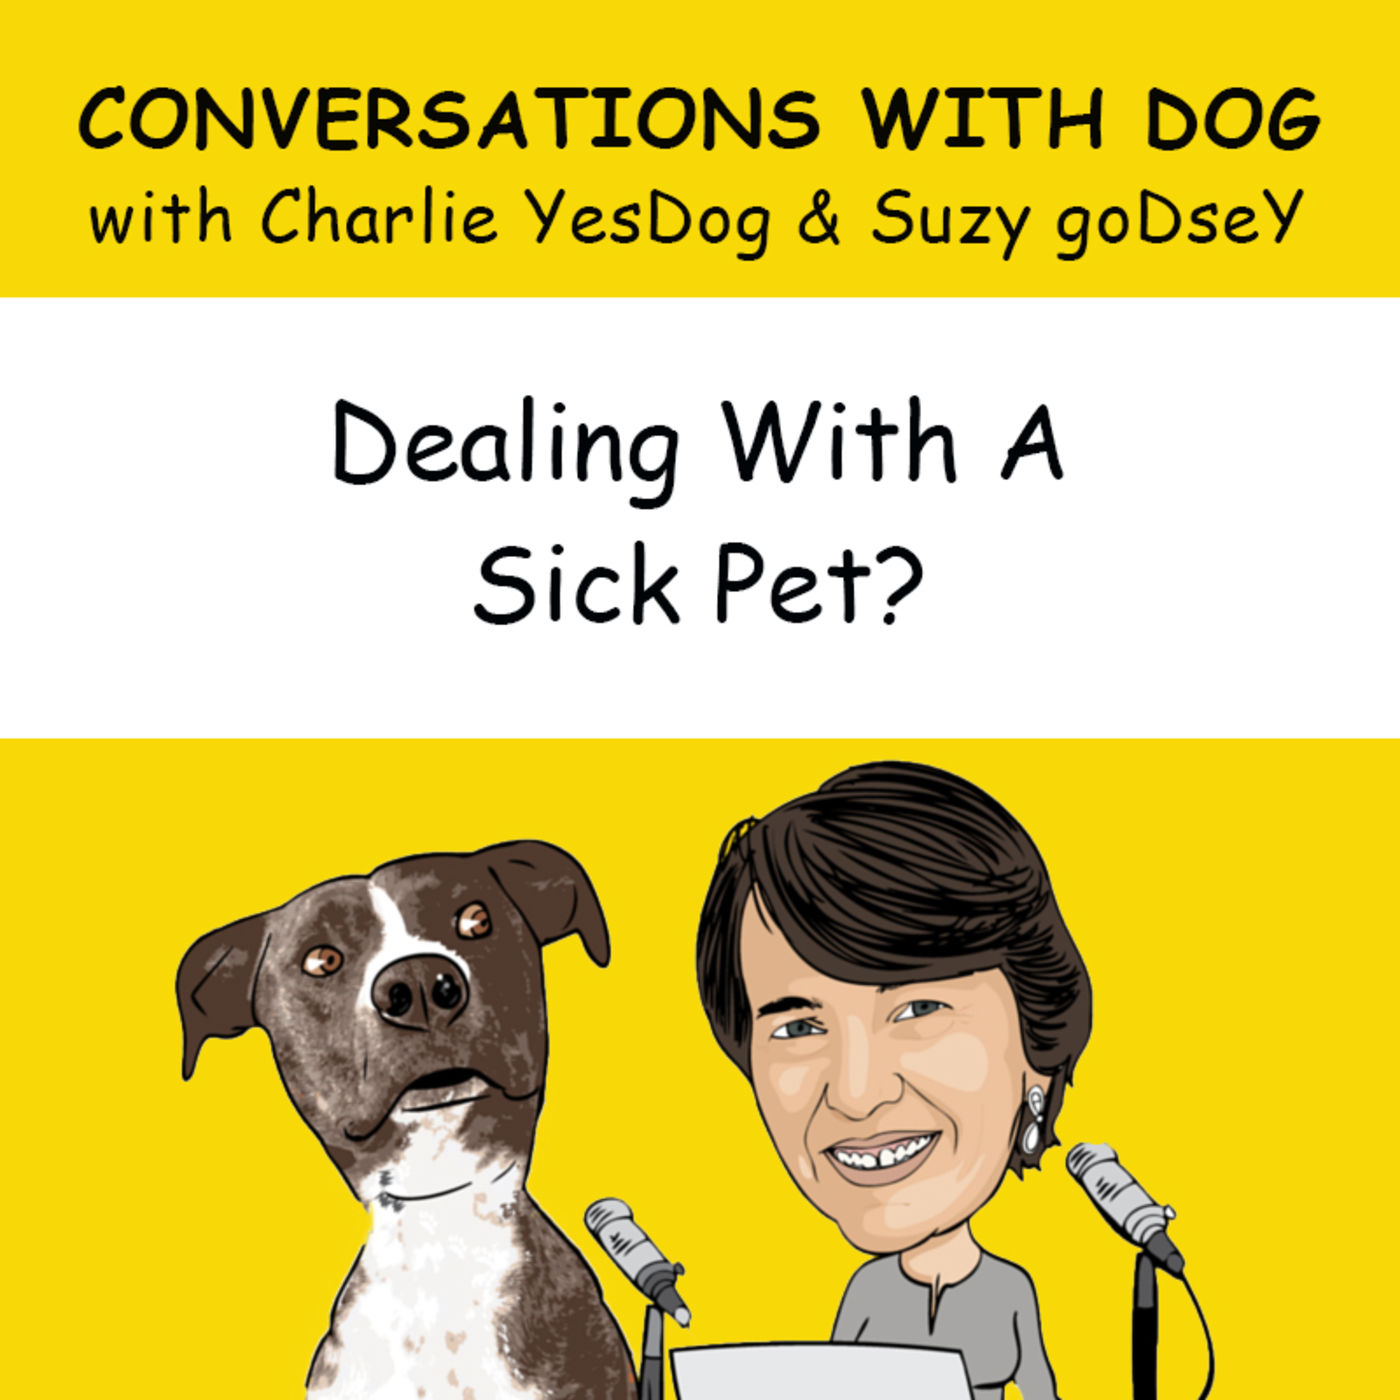 Dealing With A Sick Pet?